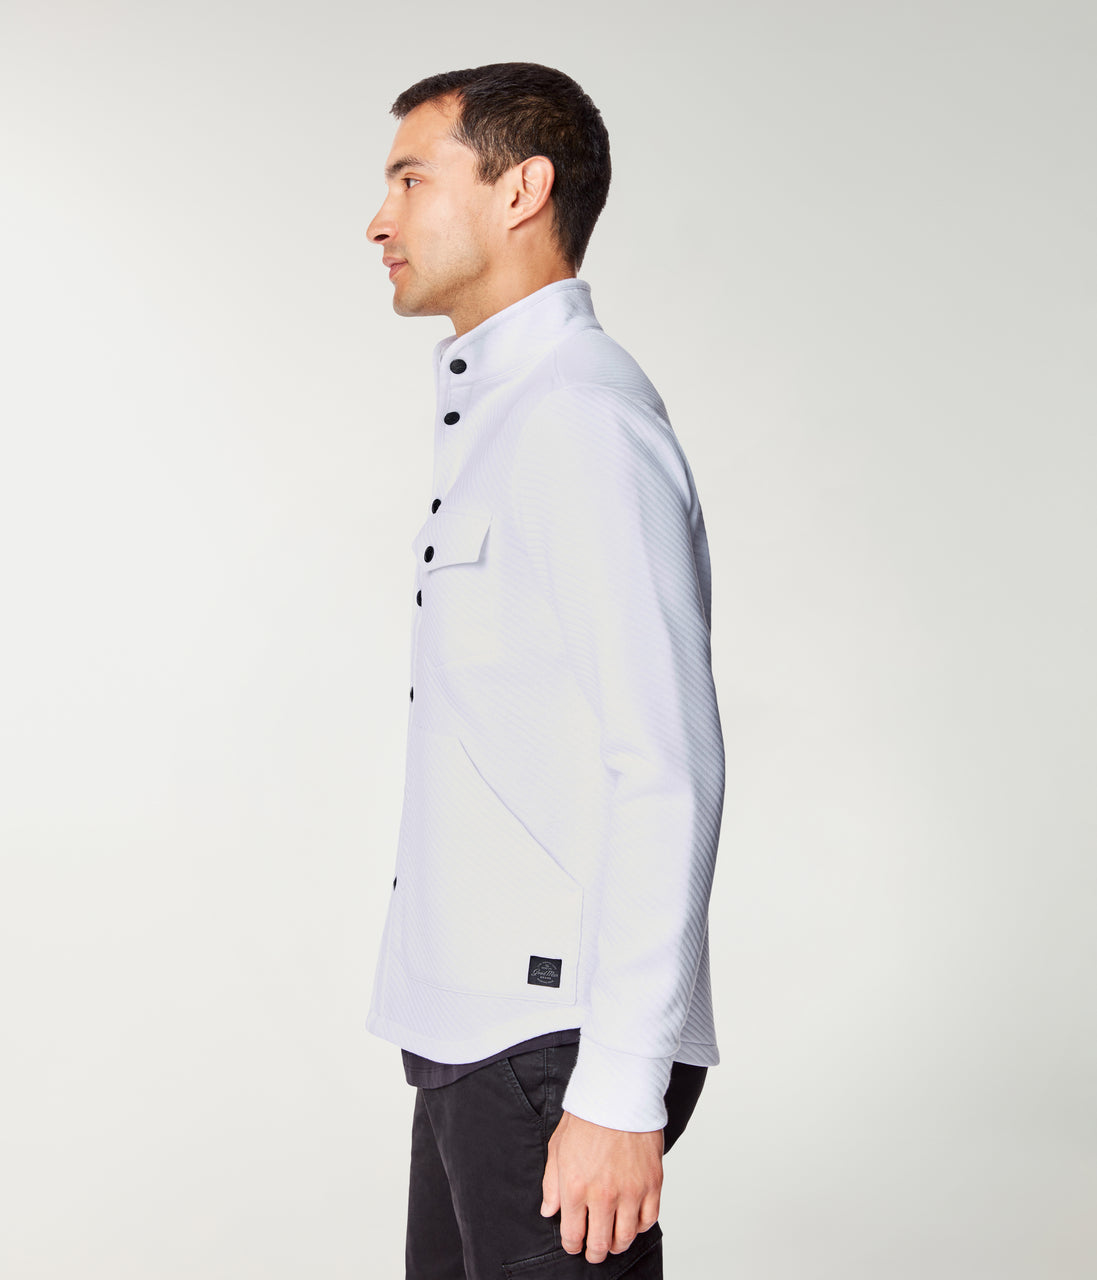 Fuji Shirt Jacket in Twill Quilt Jacquard - White - Good Man Brand - Fuji Shirt Jacket in Twill Quilt Jacquard - White